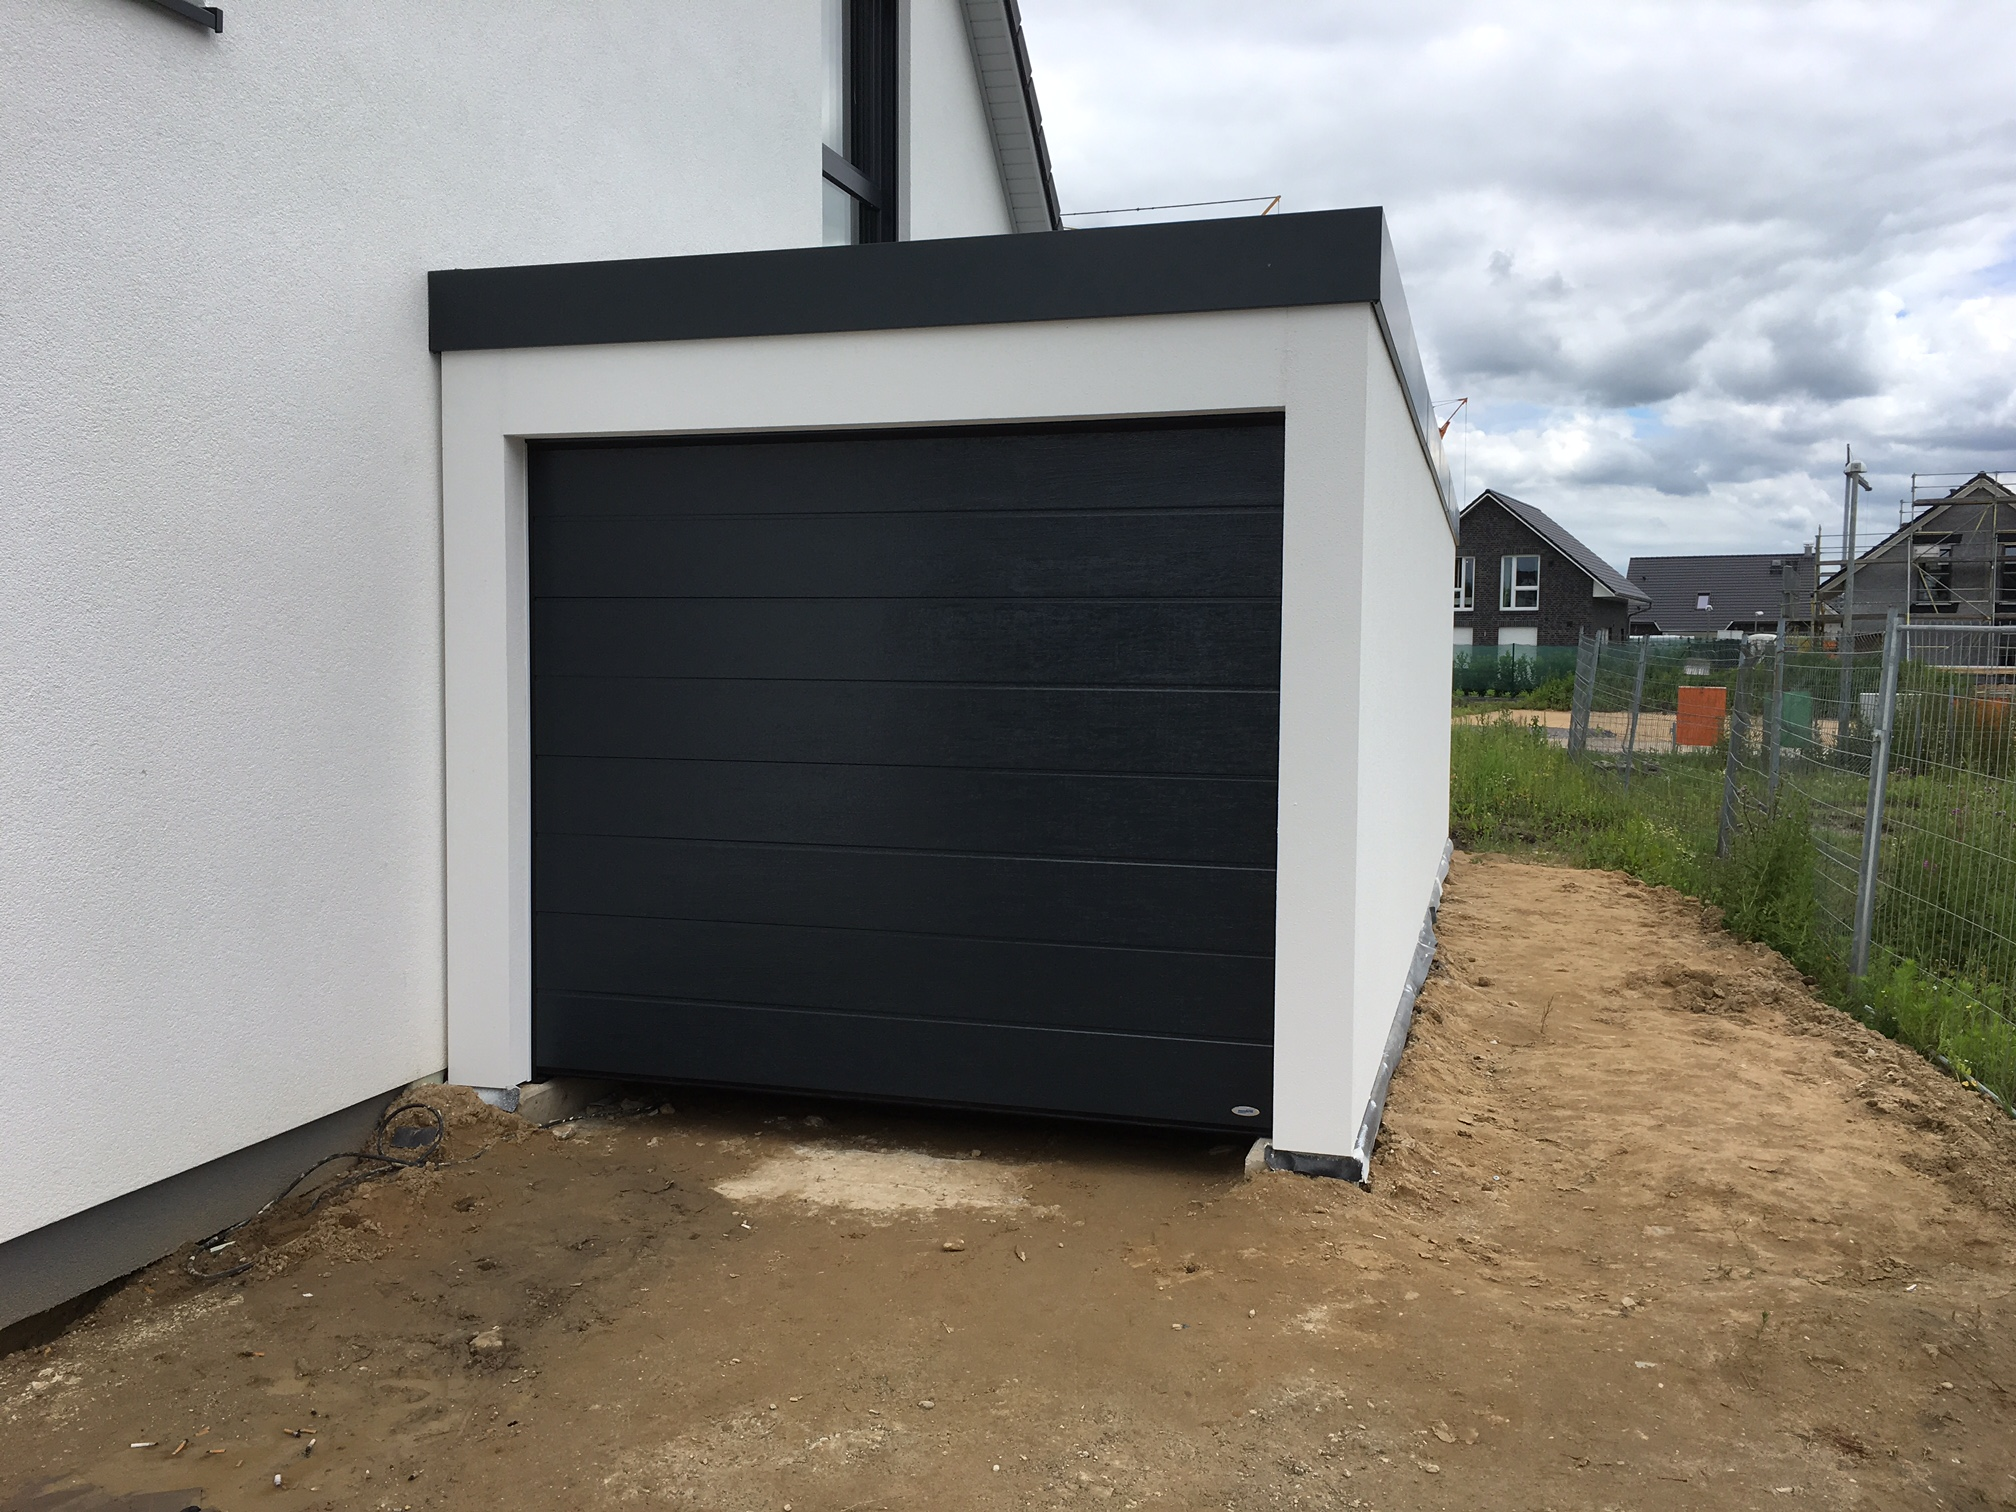 fink garage 3x9m mit carport dautphetal hessen fink garage startseite design bilder. Black Bedroom Furniture Sets. Home Design Ideas